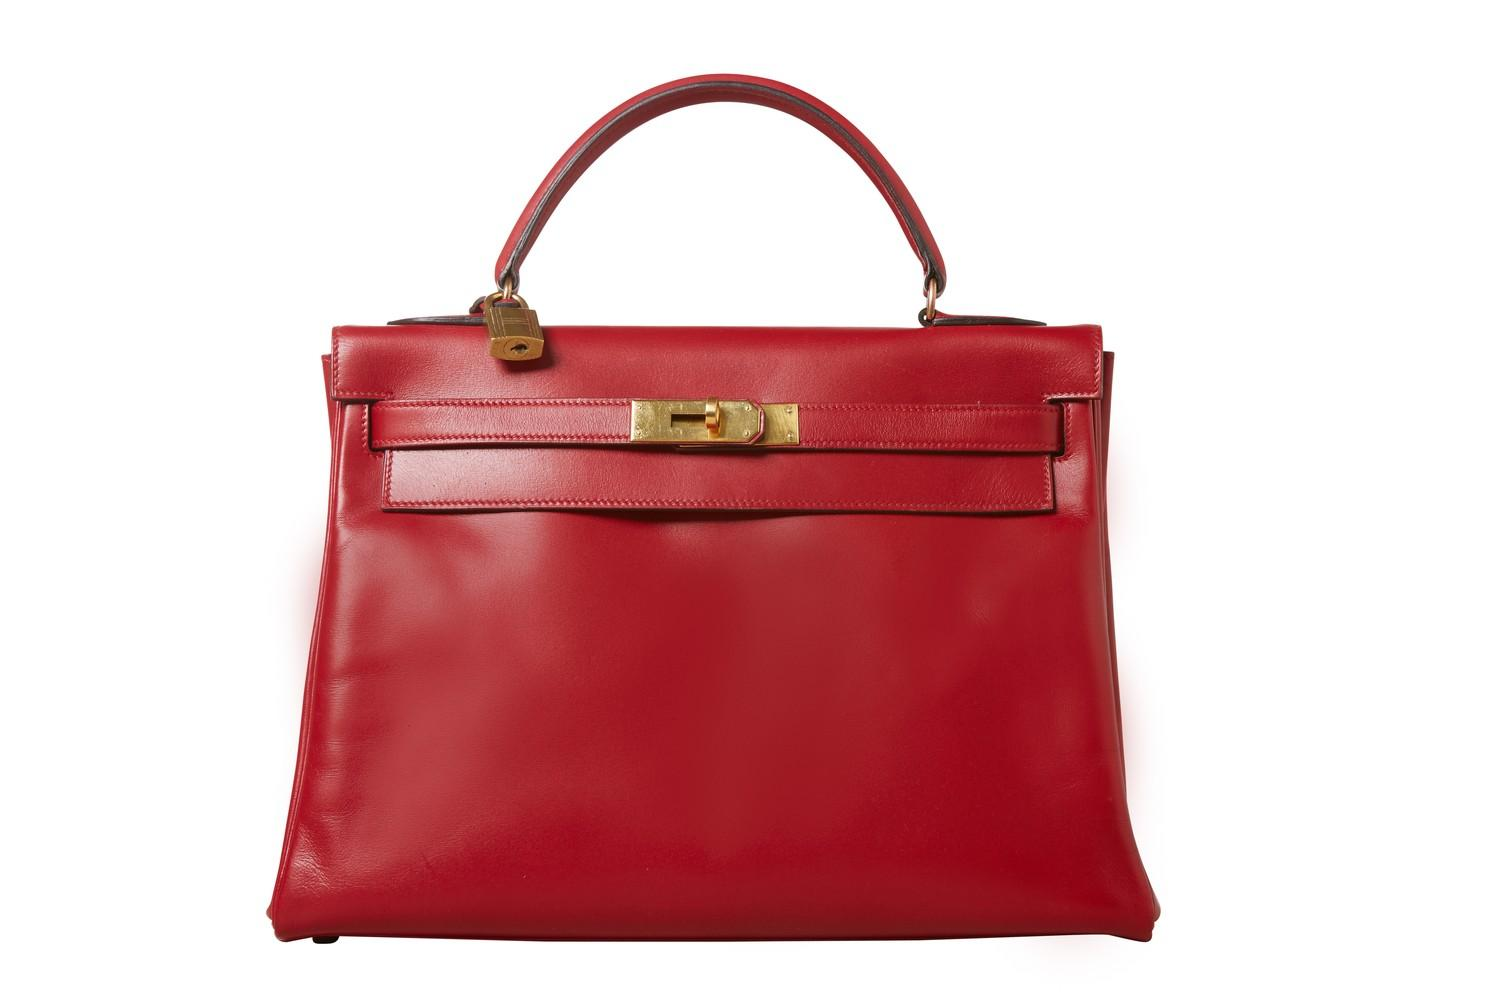 A red Hermes Kelly in tadelakt leather with gold hardware. W.32cm x H.23cm x D.10.5cm, stamped O (